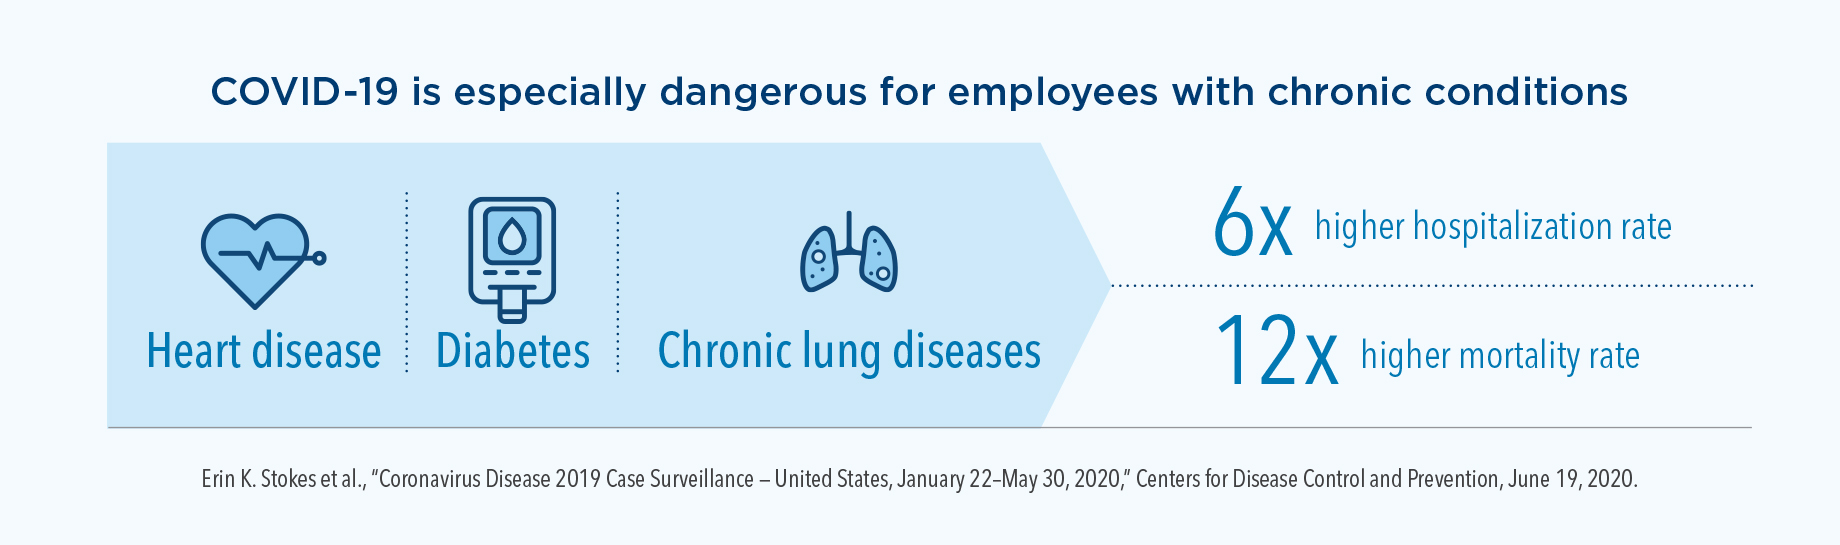 COVID-19 is especially dangerous for employees with chronic conditions. For employees with heart disease, diabetes, or chronic lung diseases, the hospitalization rate is 6 times higher, and the mortality rate is 12 times higher.